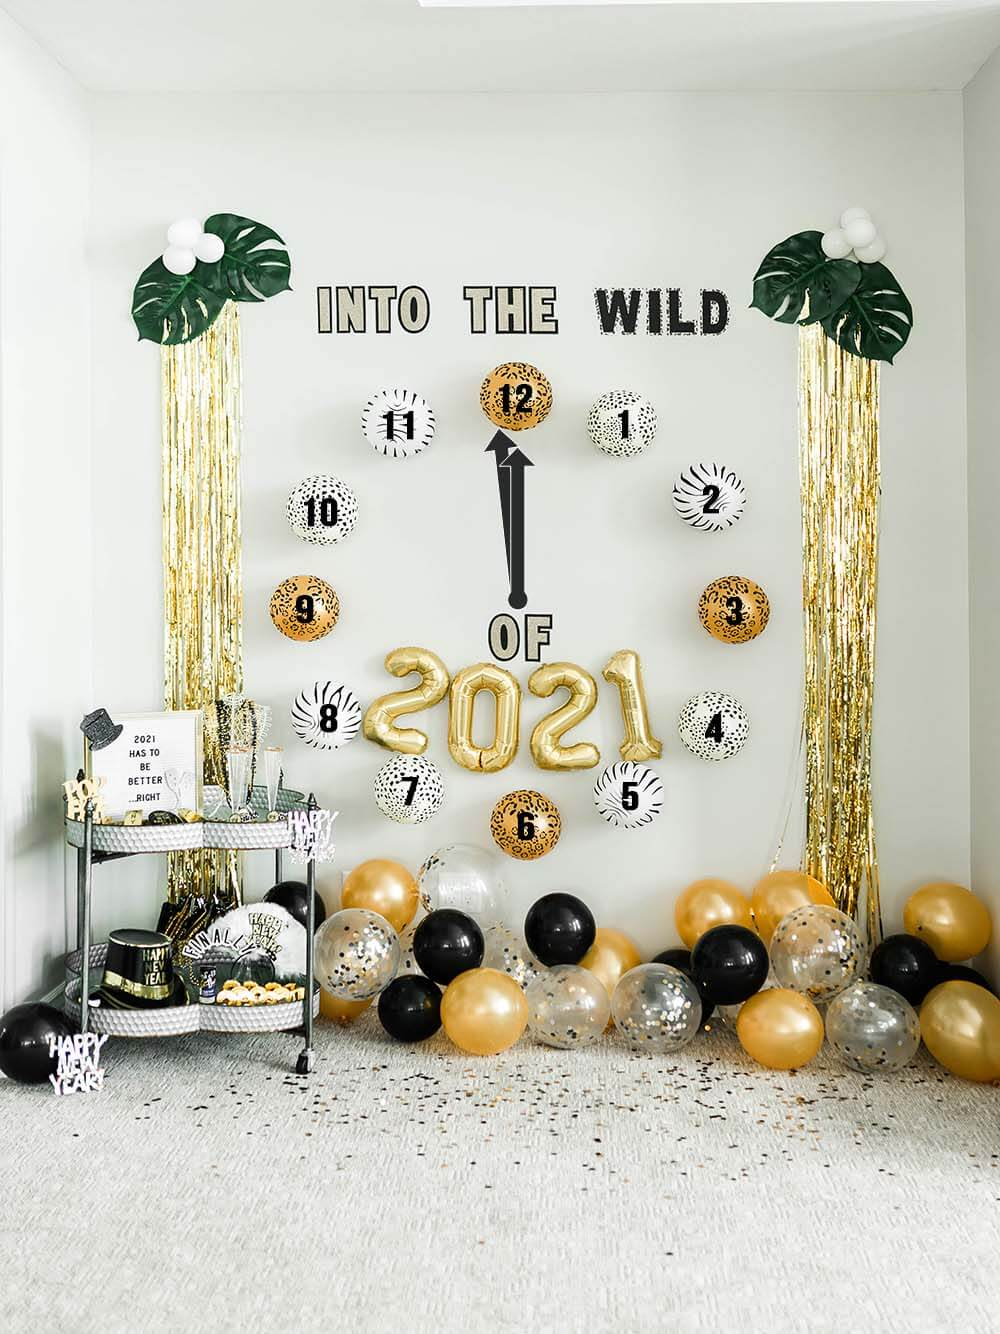 Into the WILD of 2021 New Years Backdrop